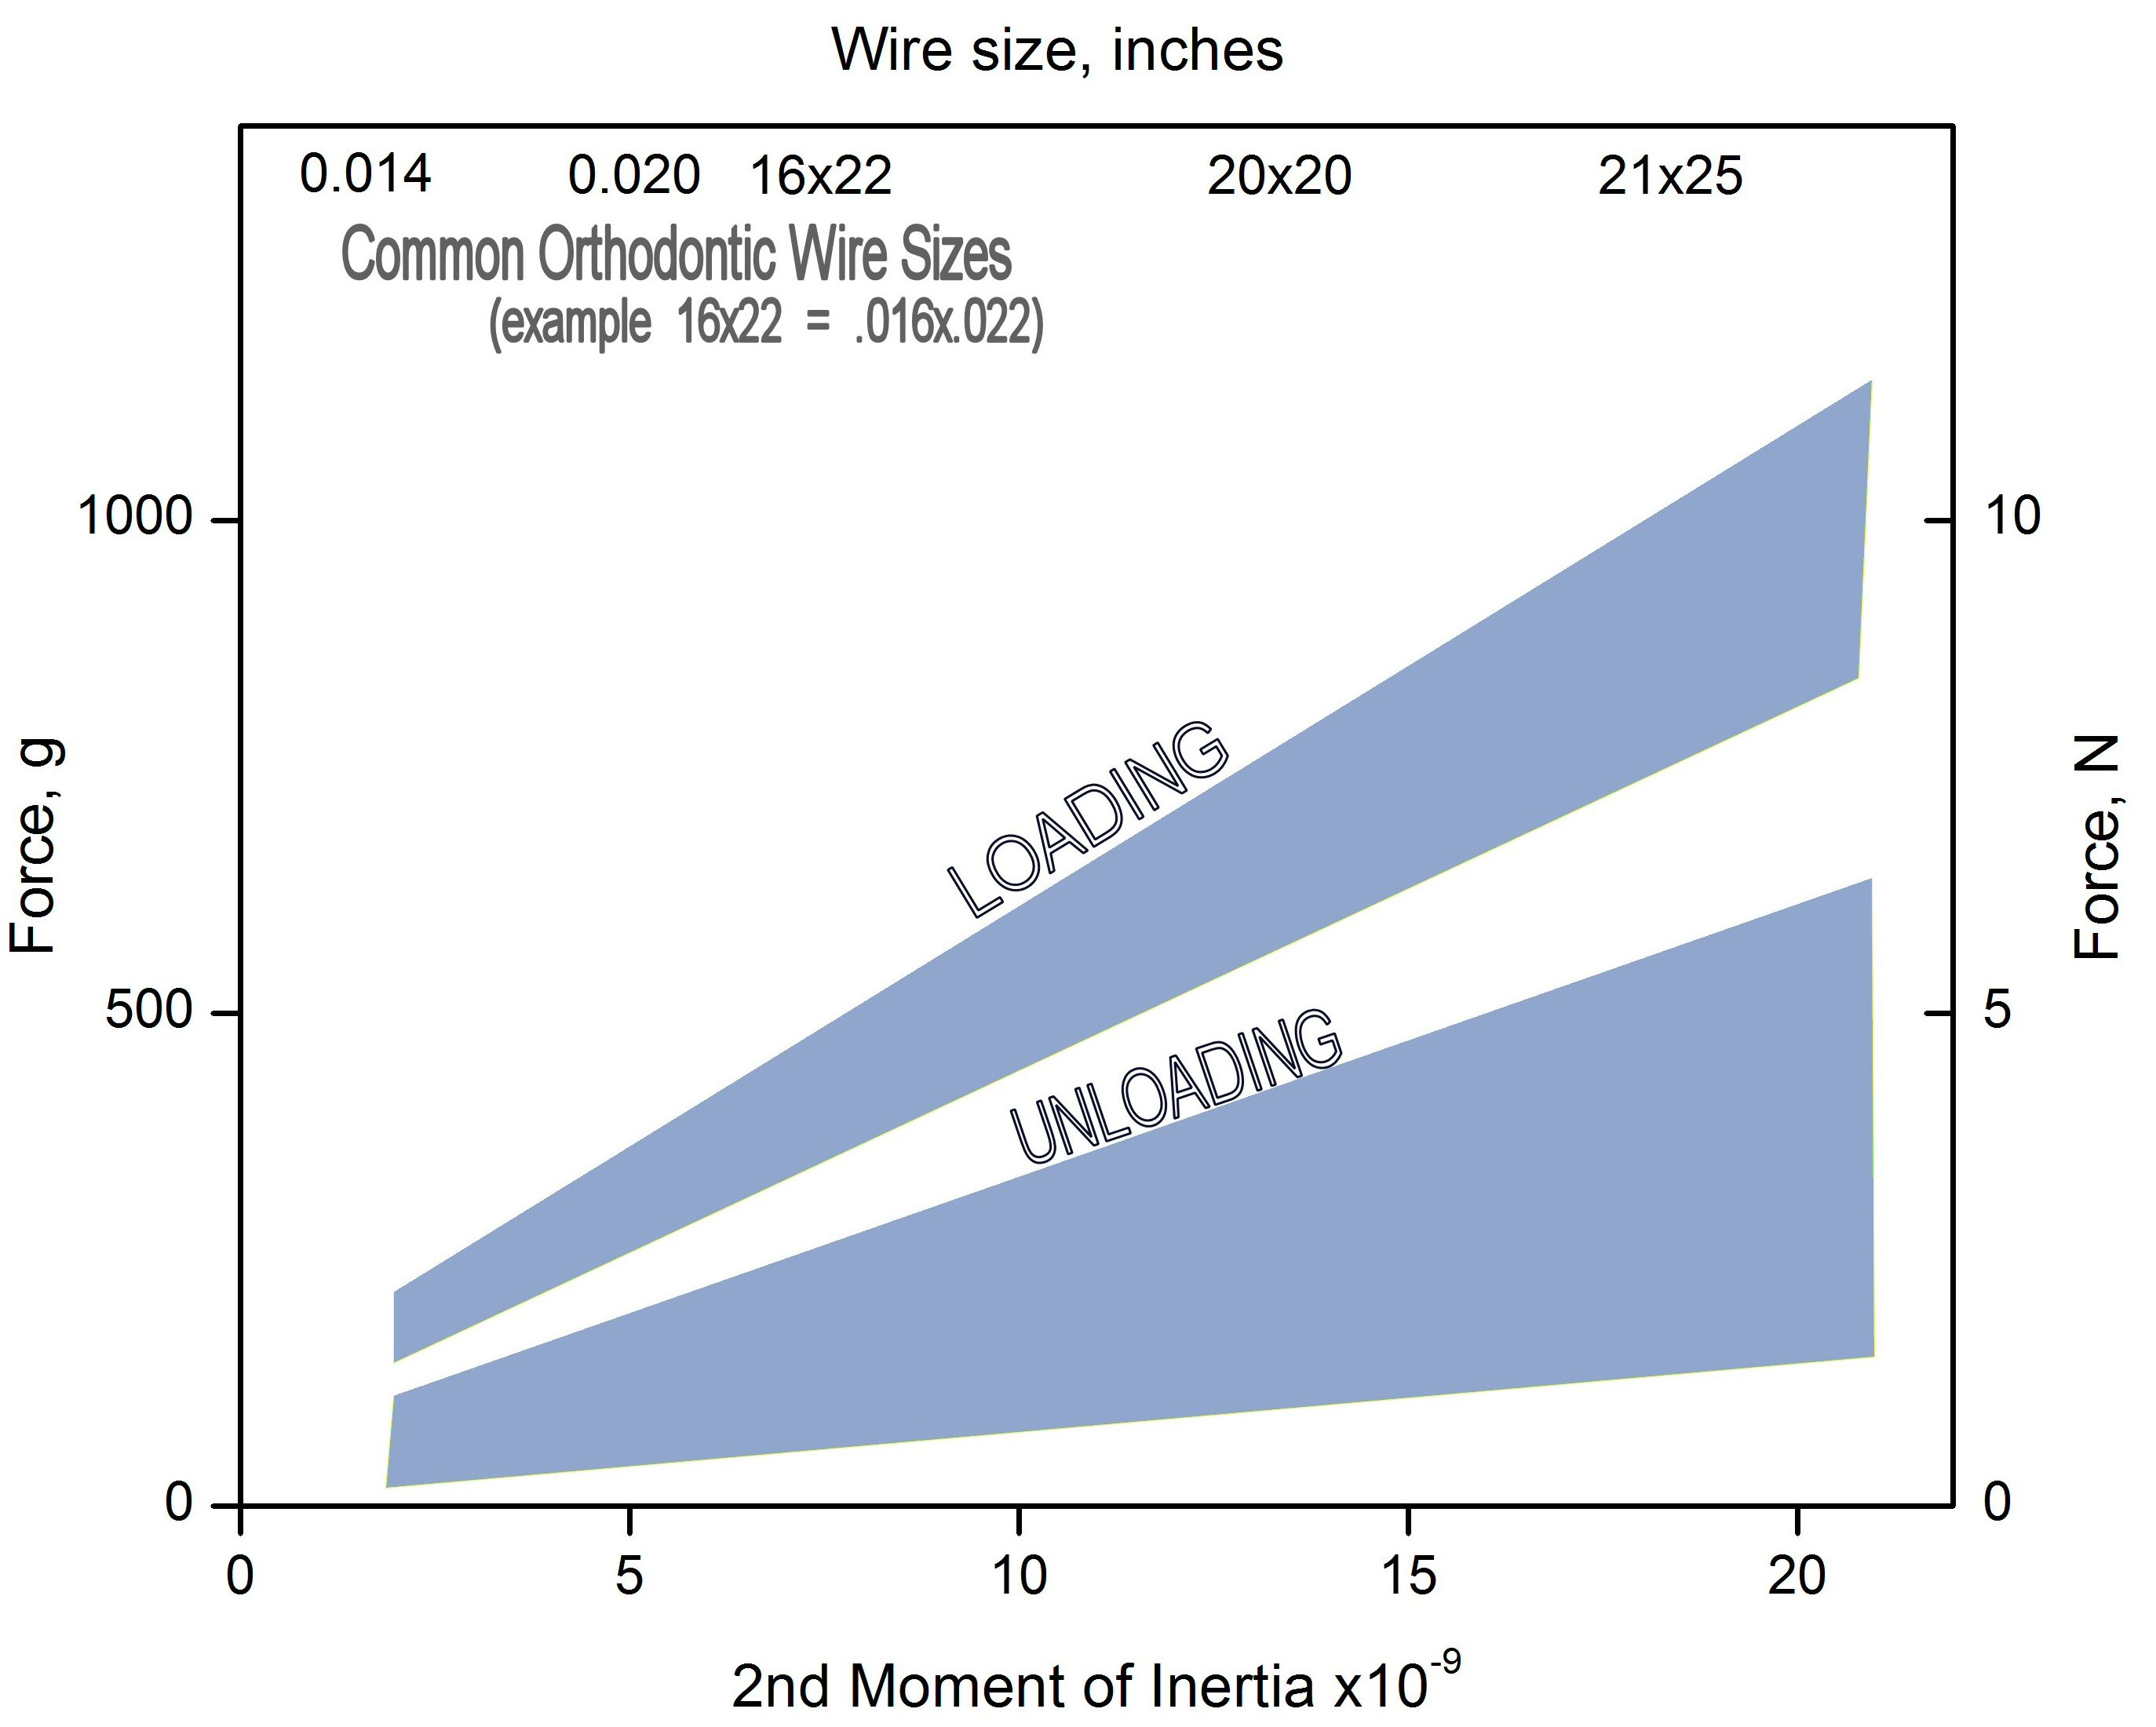 Wire Size vs. 2nd Moment of Inertia: NiTi